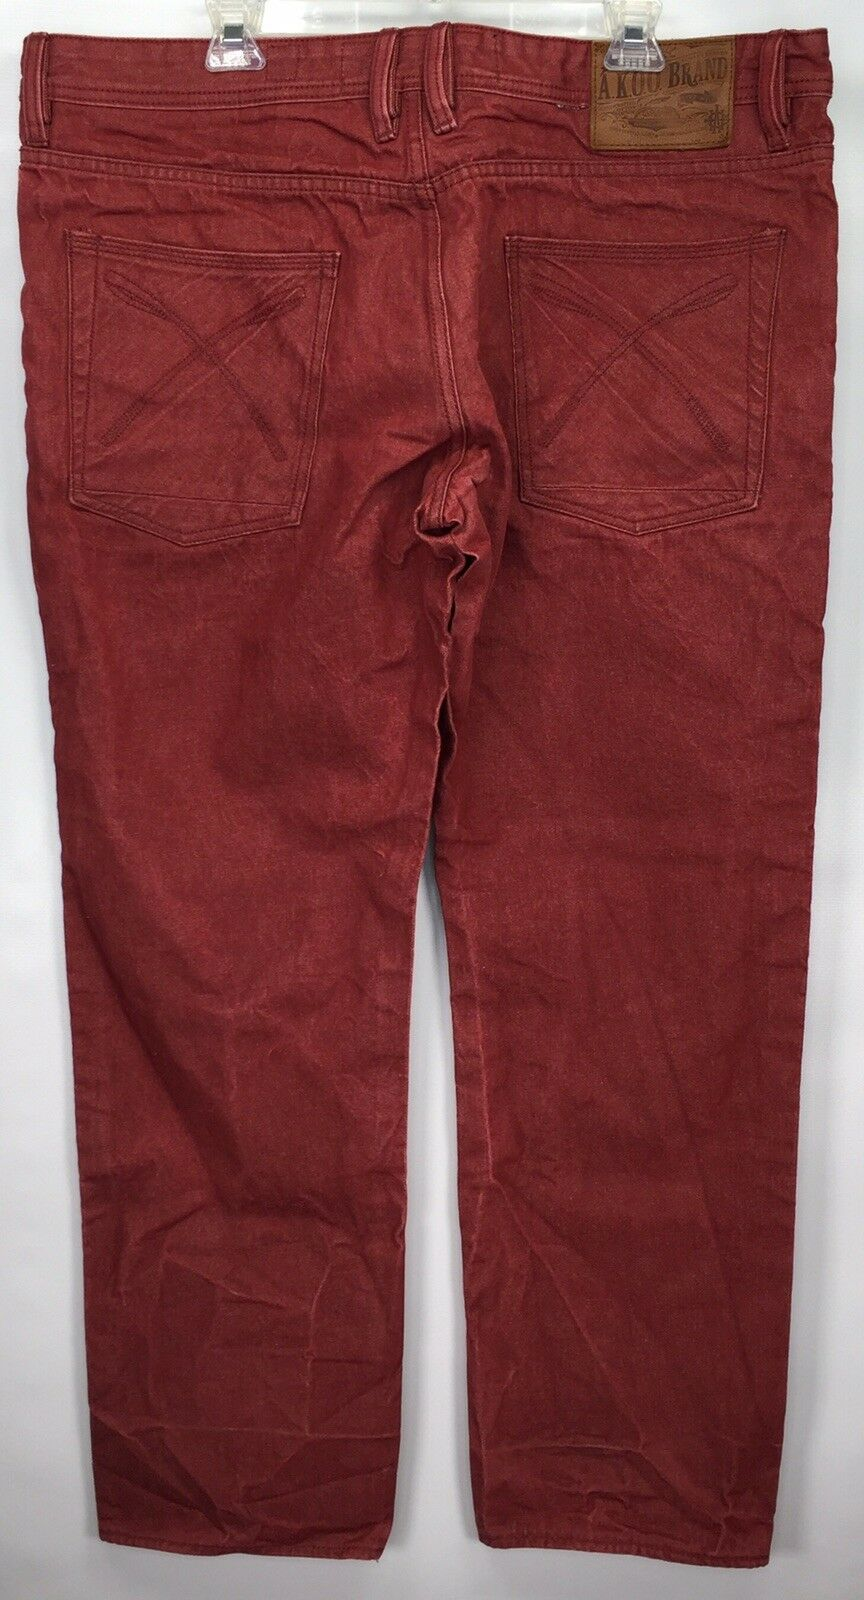 "AKOO Brand Designer Red Jeans Men's 40 (mea 42x33) ""Live Full Live Well"" Hip-Hop"